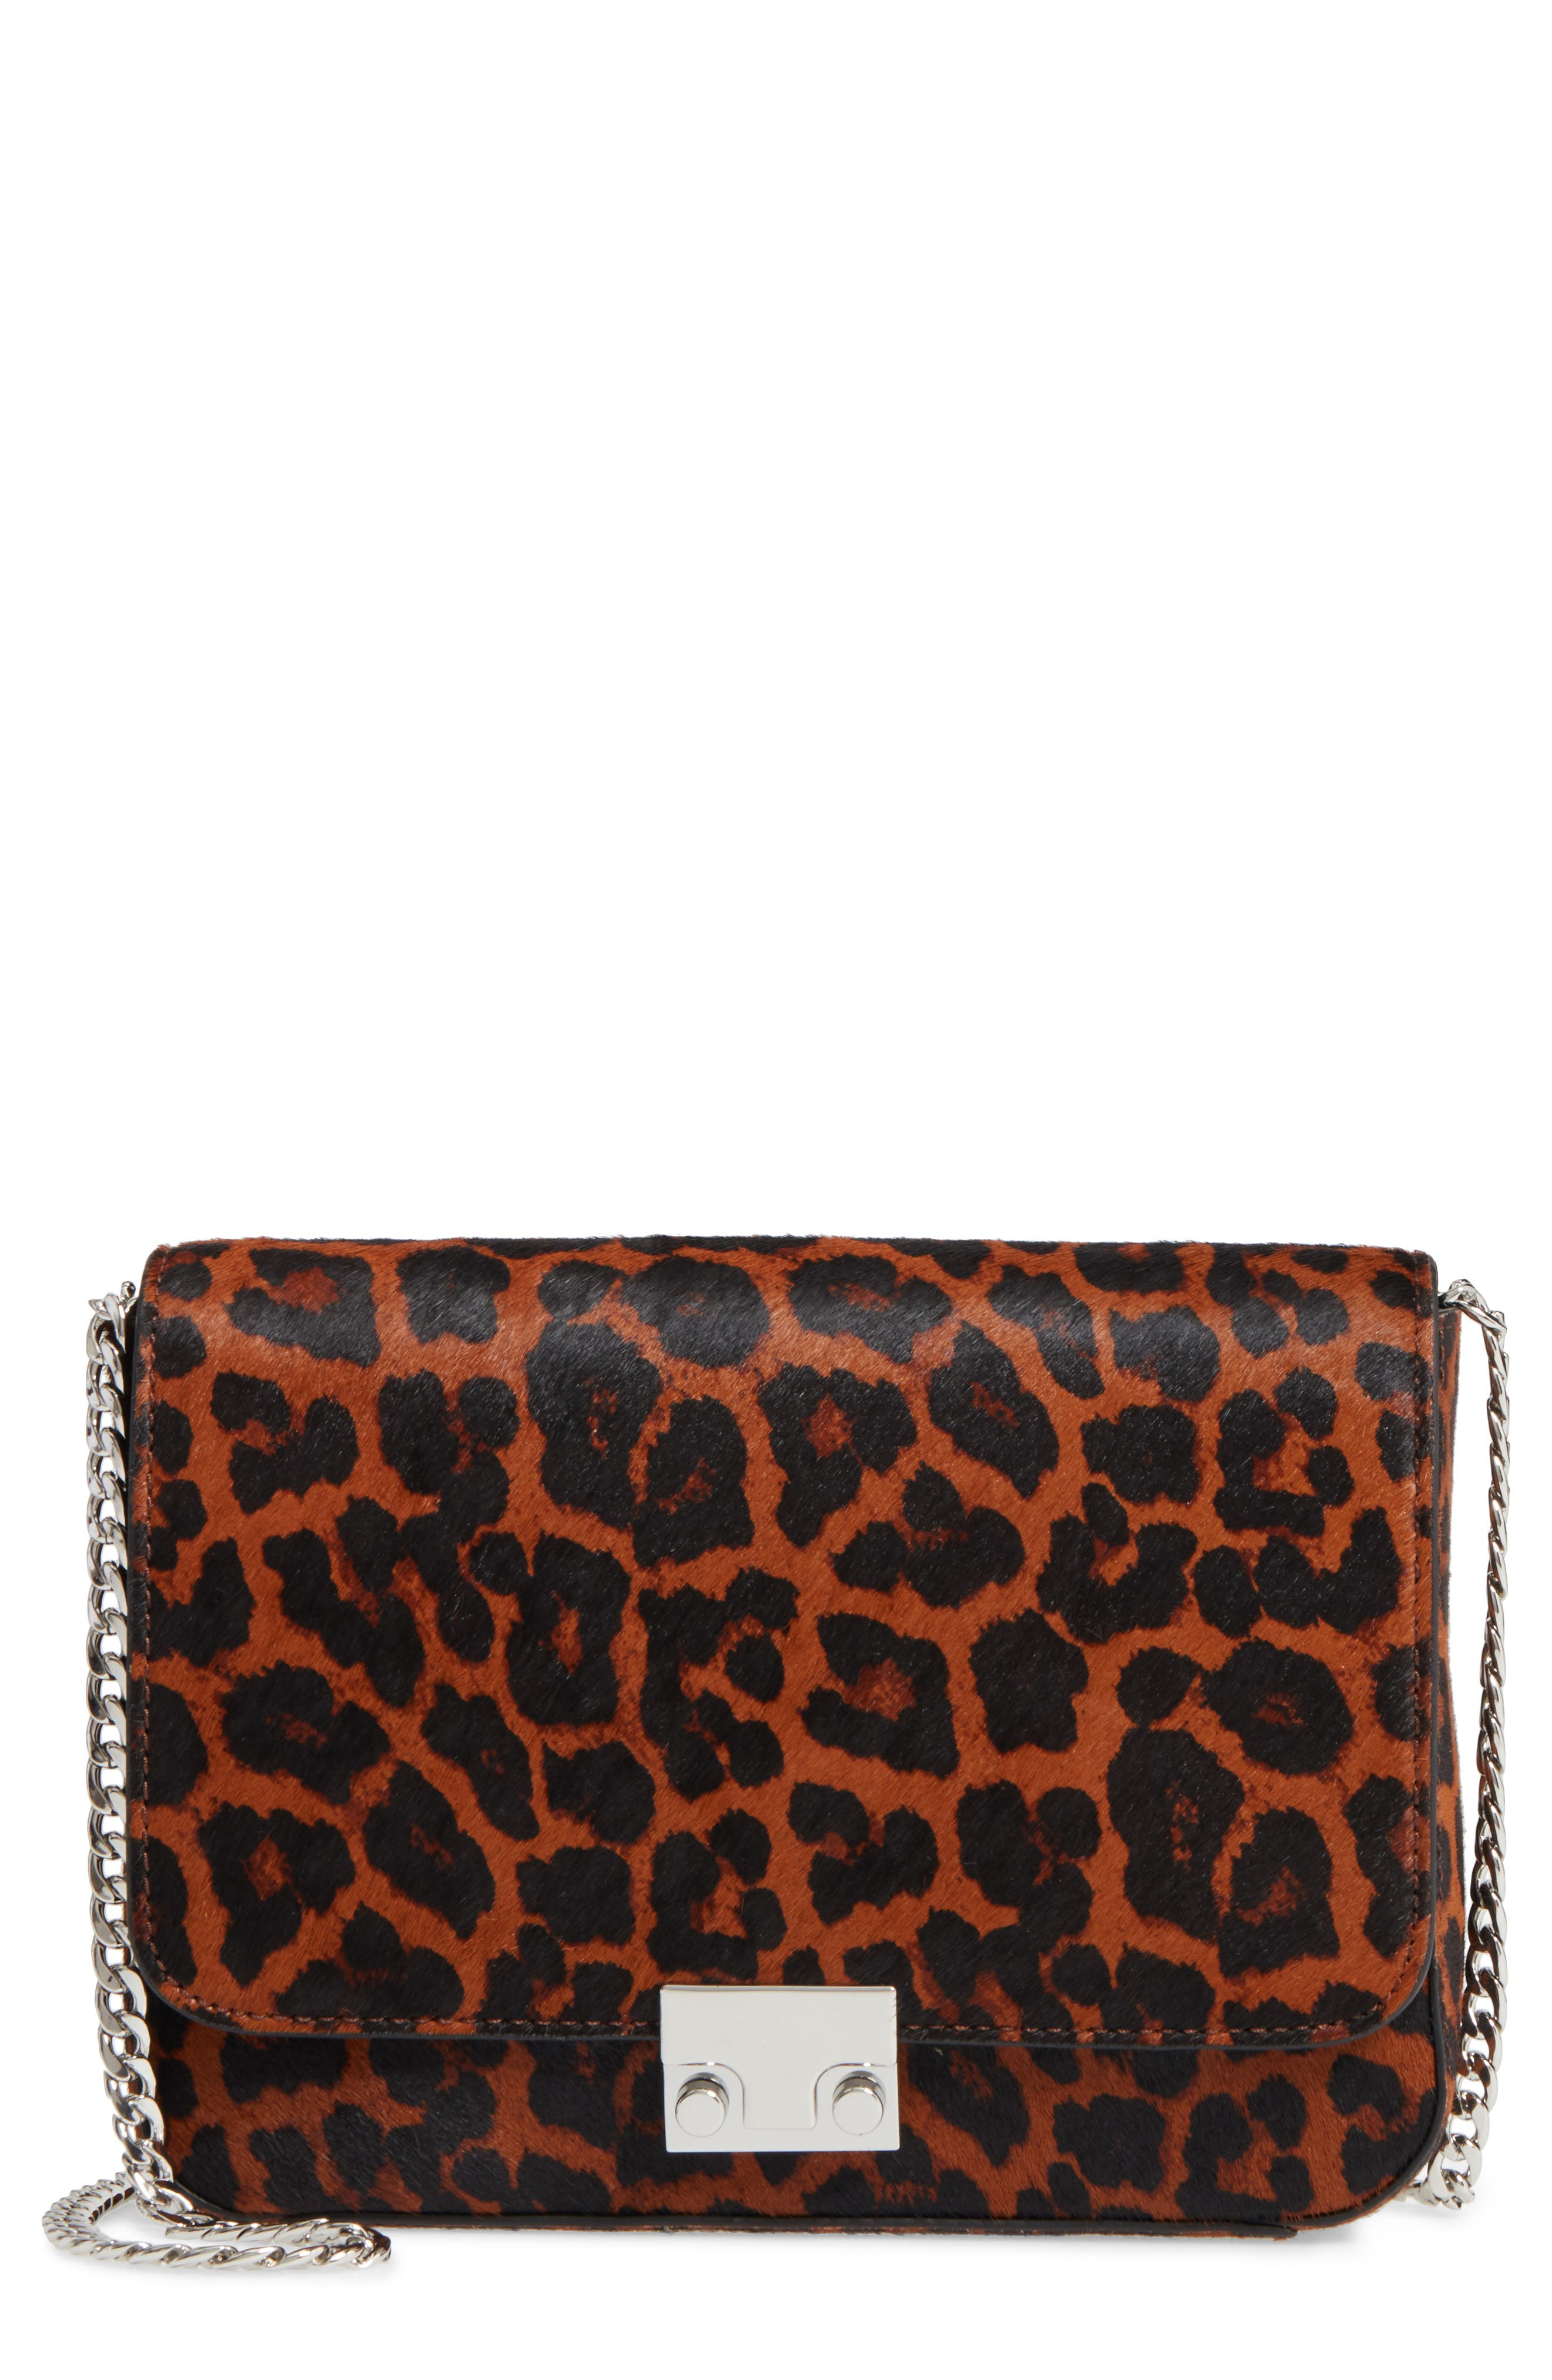 Main Image - Loeffler Randall Lock Genuine Calf Hair Shoulder Bag